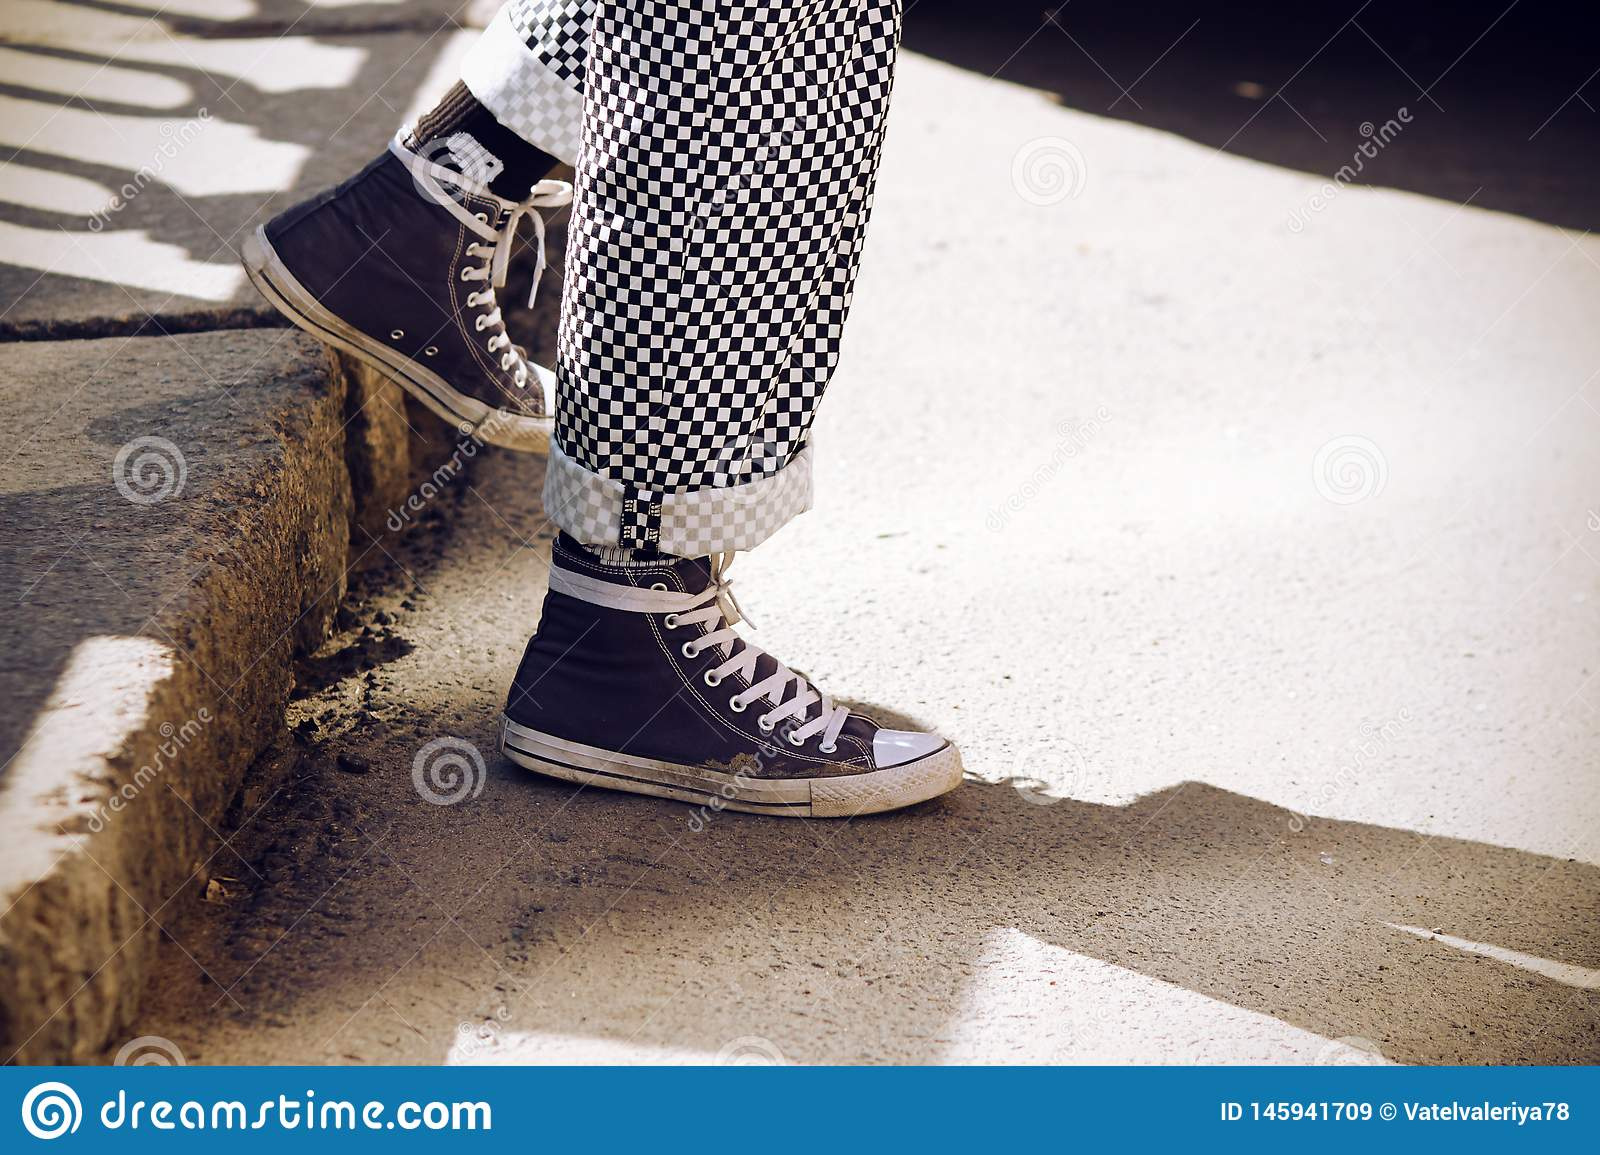 Legs dressed in plaid pants and in blue sneakers descend from the step